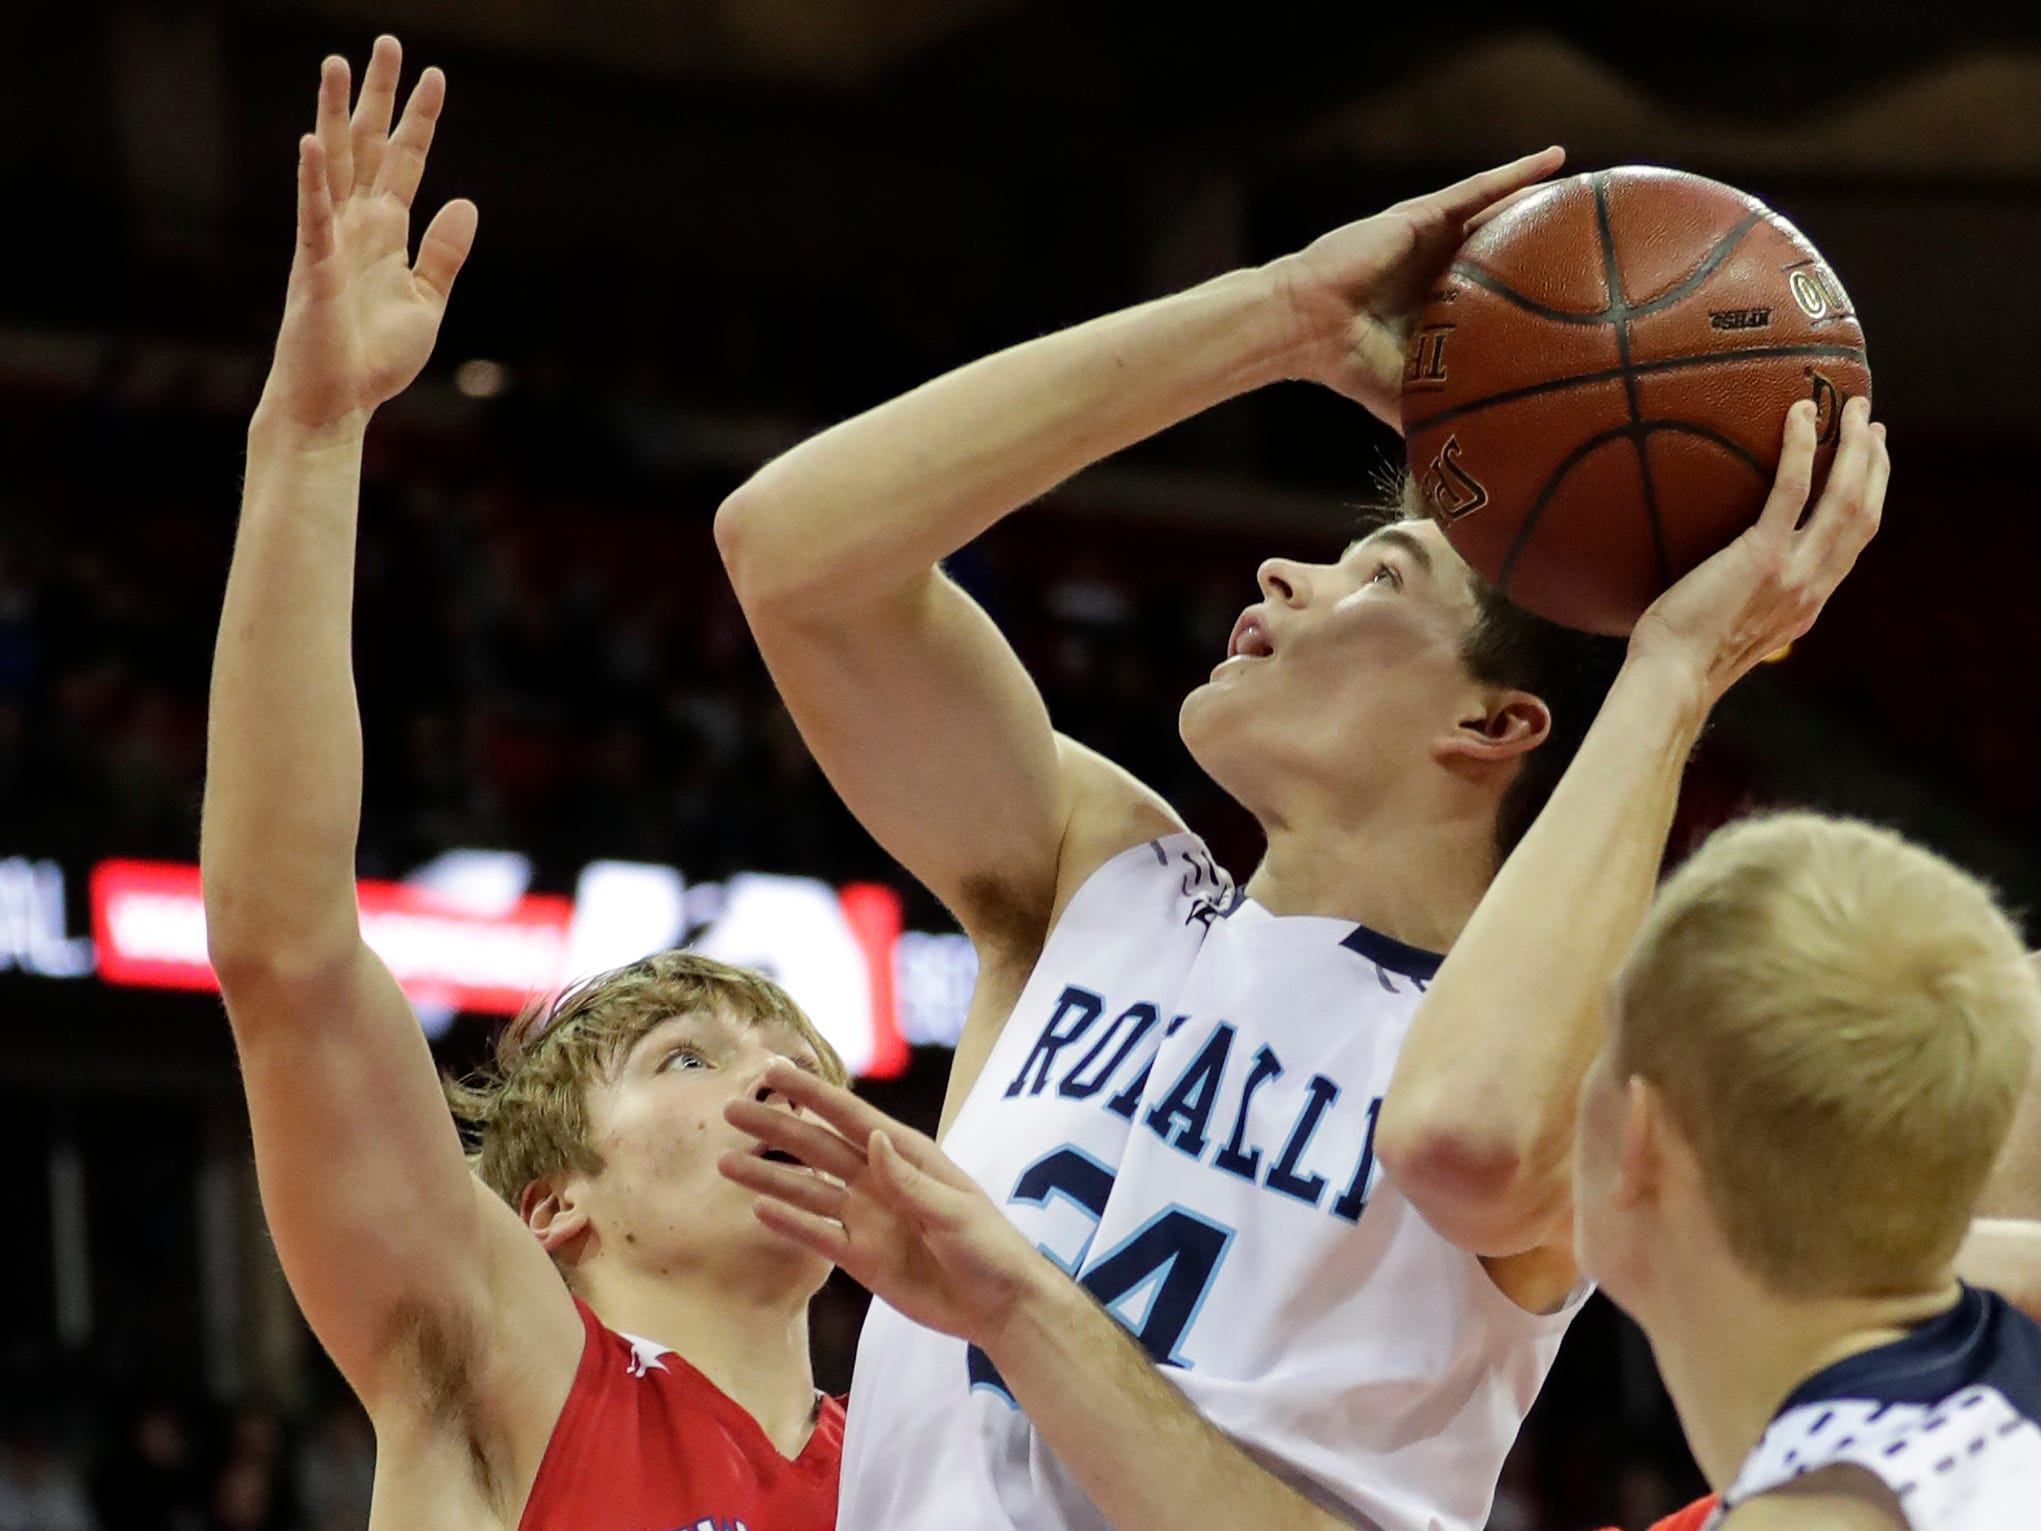 Roncalli High School's Ian Behringer (34) goes up for a layup against New Glarus High School during their WIAA Division 4 boys basketball state semifinal at the Kohl Center Thursday, March 14, 2019, in Madison, Wis.